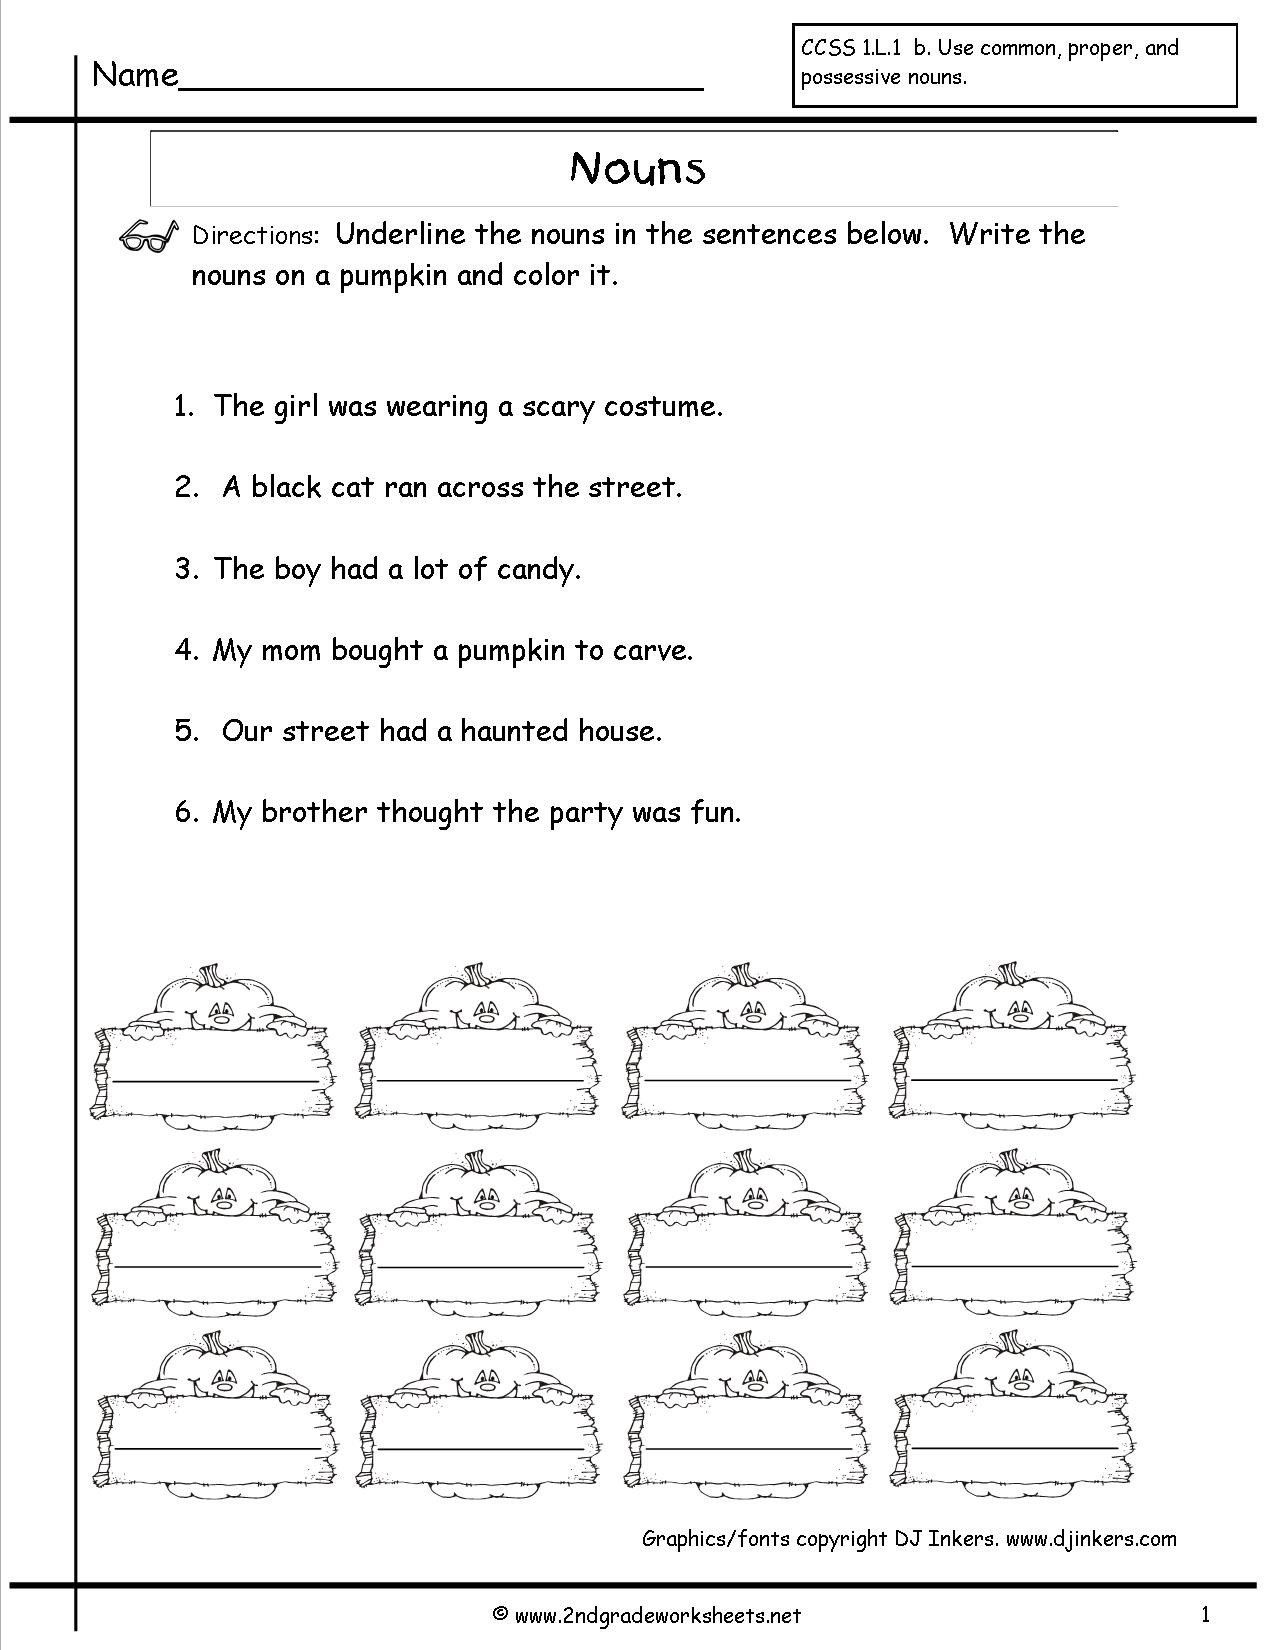 Possessive Nouns Worksheet 6th Grade Singular Possessive